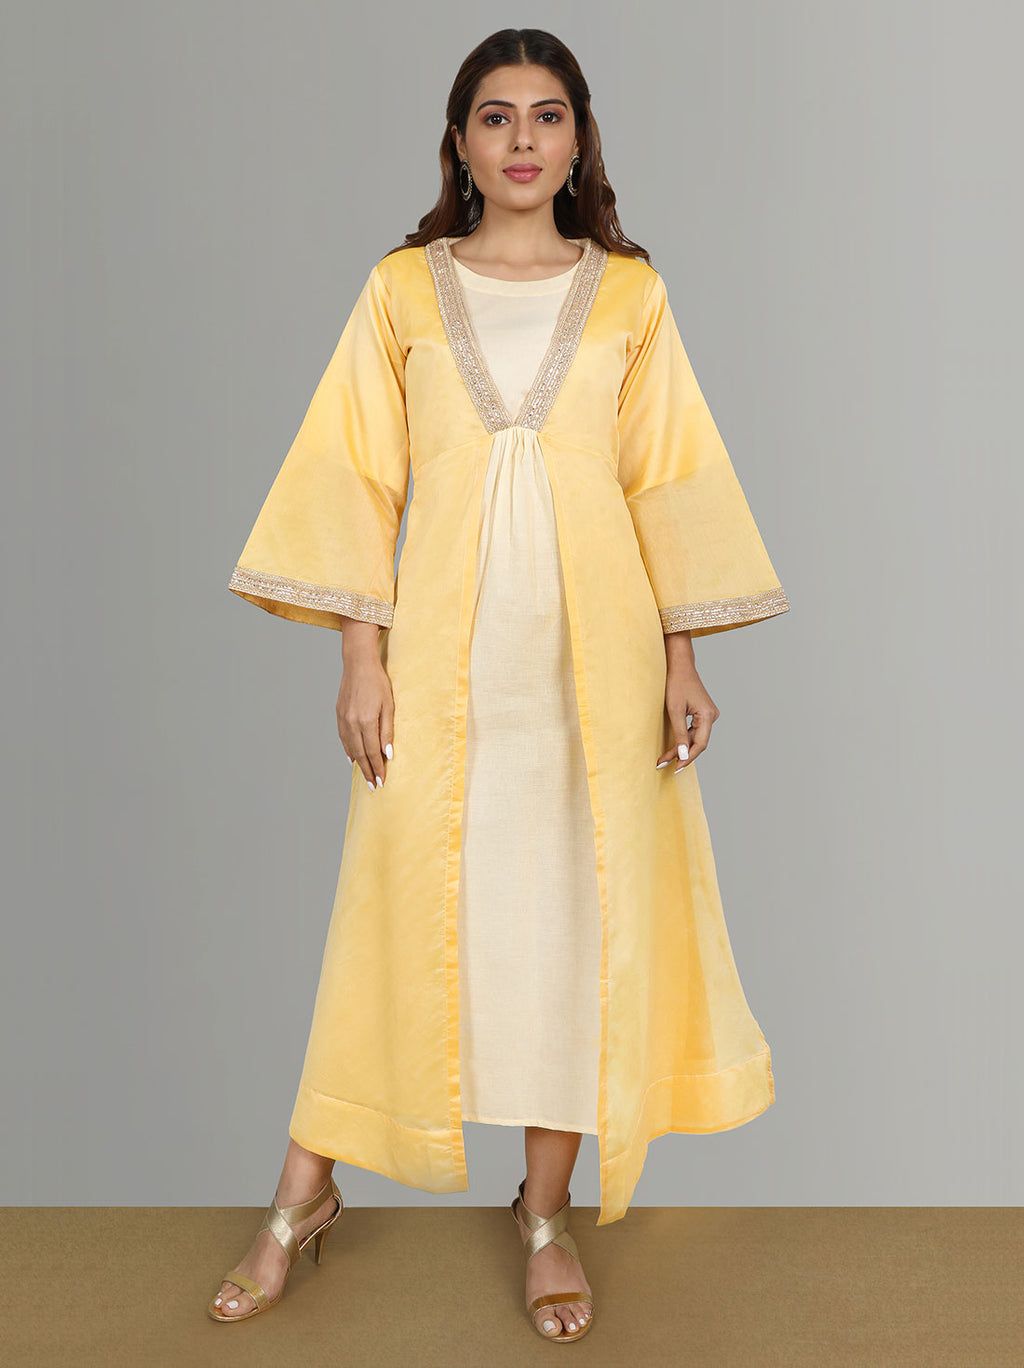 Ethnic Kurti - Maze yellow kurti with chanderi jacket